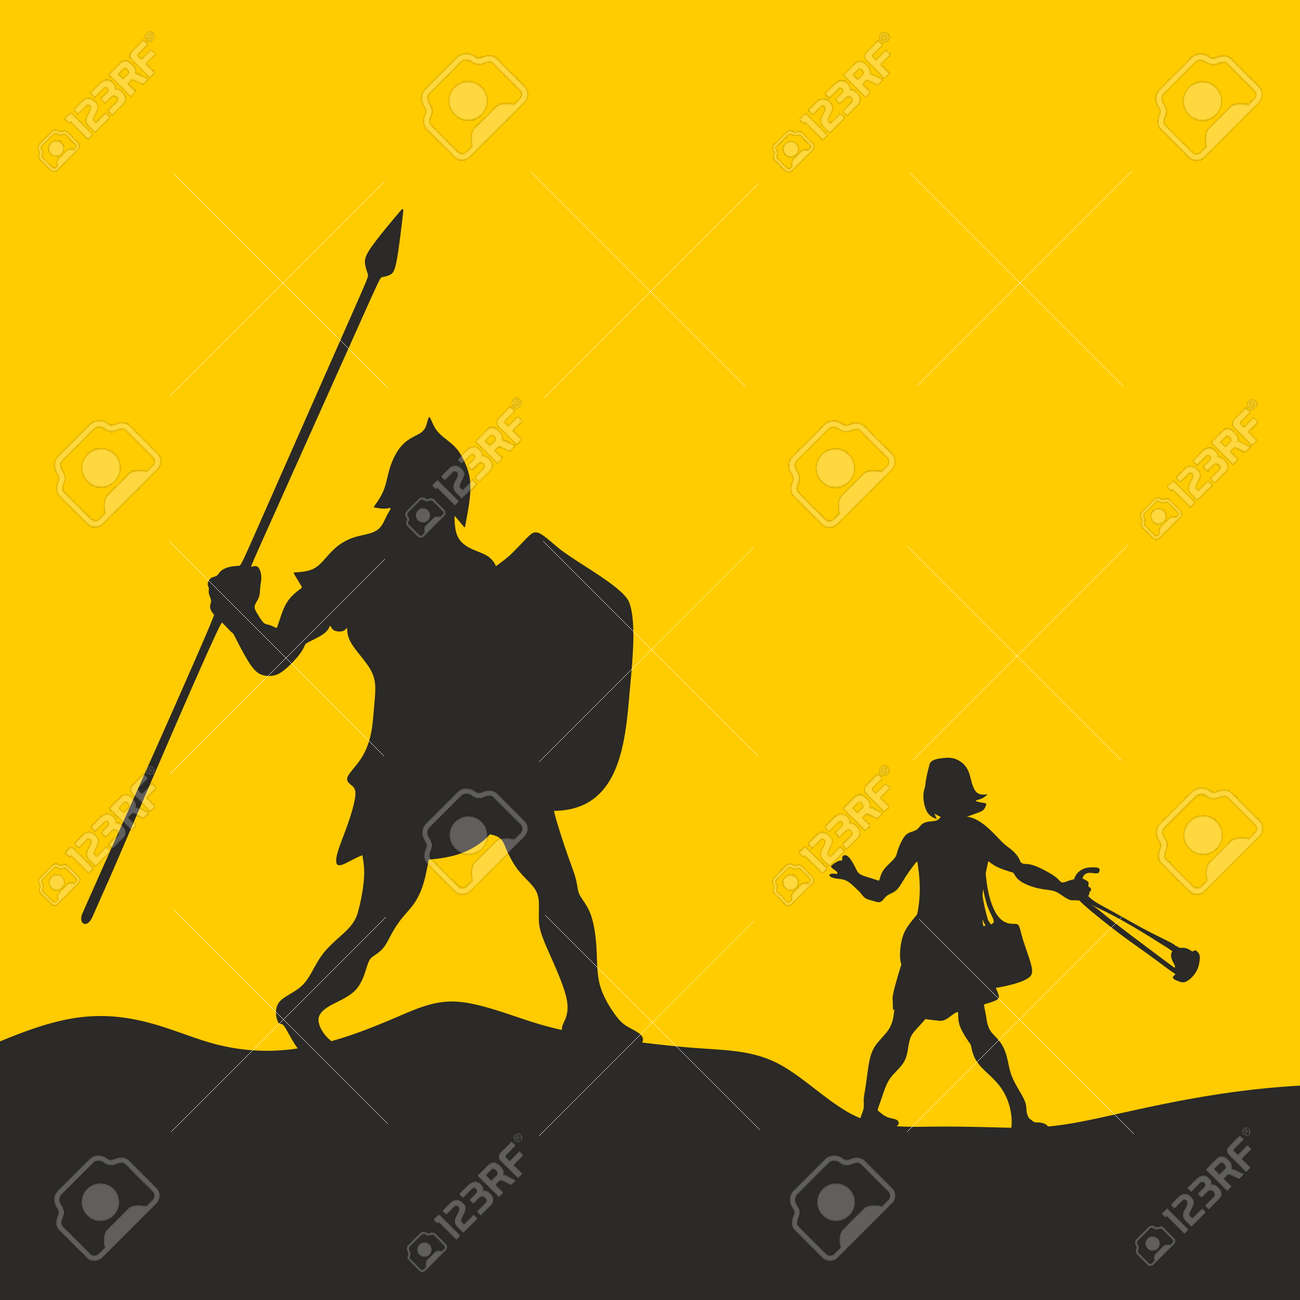 david and goliath silhouette hand drawn royalty free cliparts